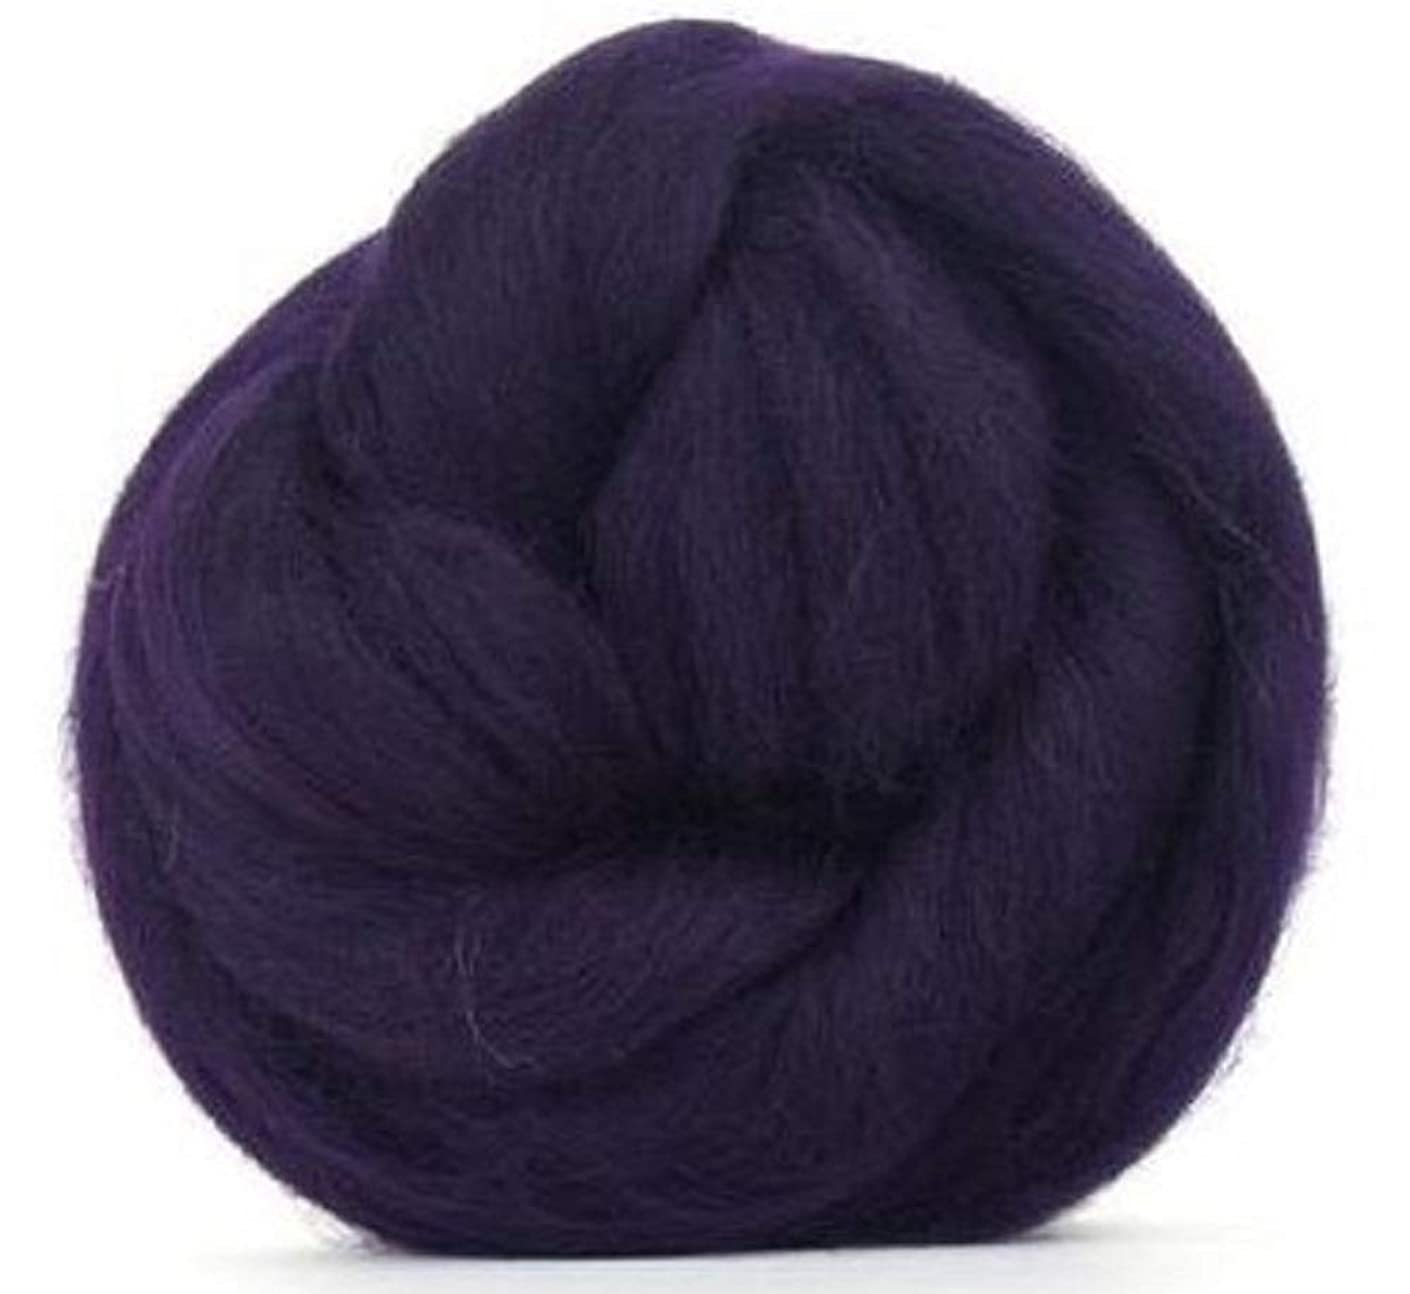 4 oz Paradise Fibers 64 Count Dyed Aubergine (Purple) Merino Top Spinning Fiber Luxuriously Soft Wool Top Roving for Spinning with Spindle or Wheel, Felting, Blending and Weaving